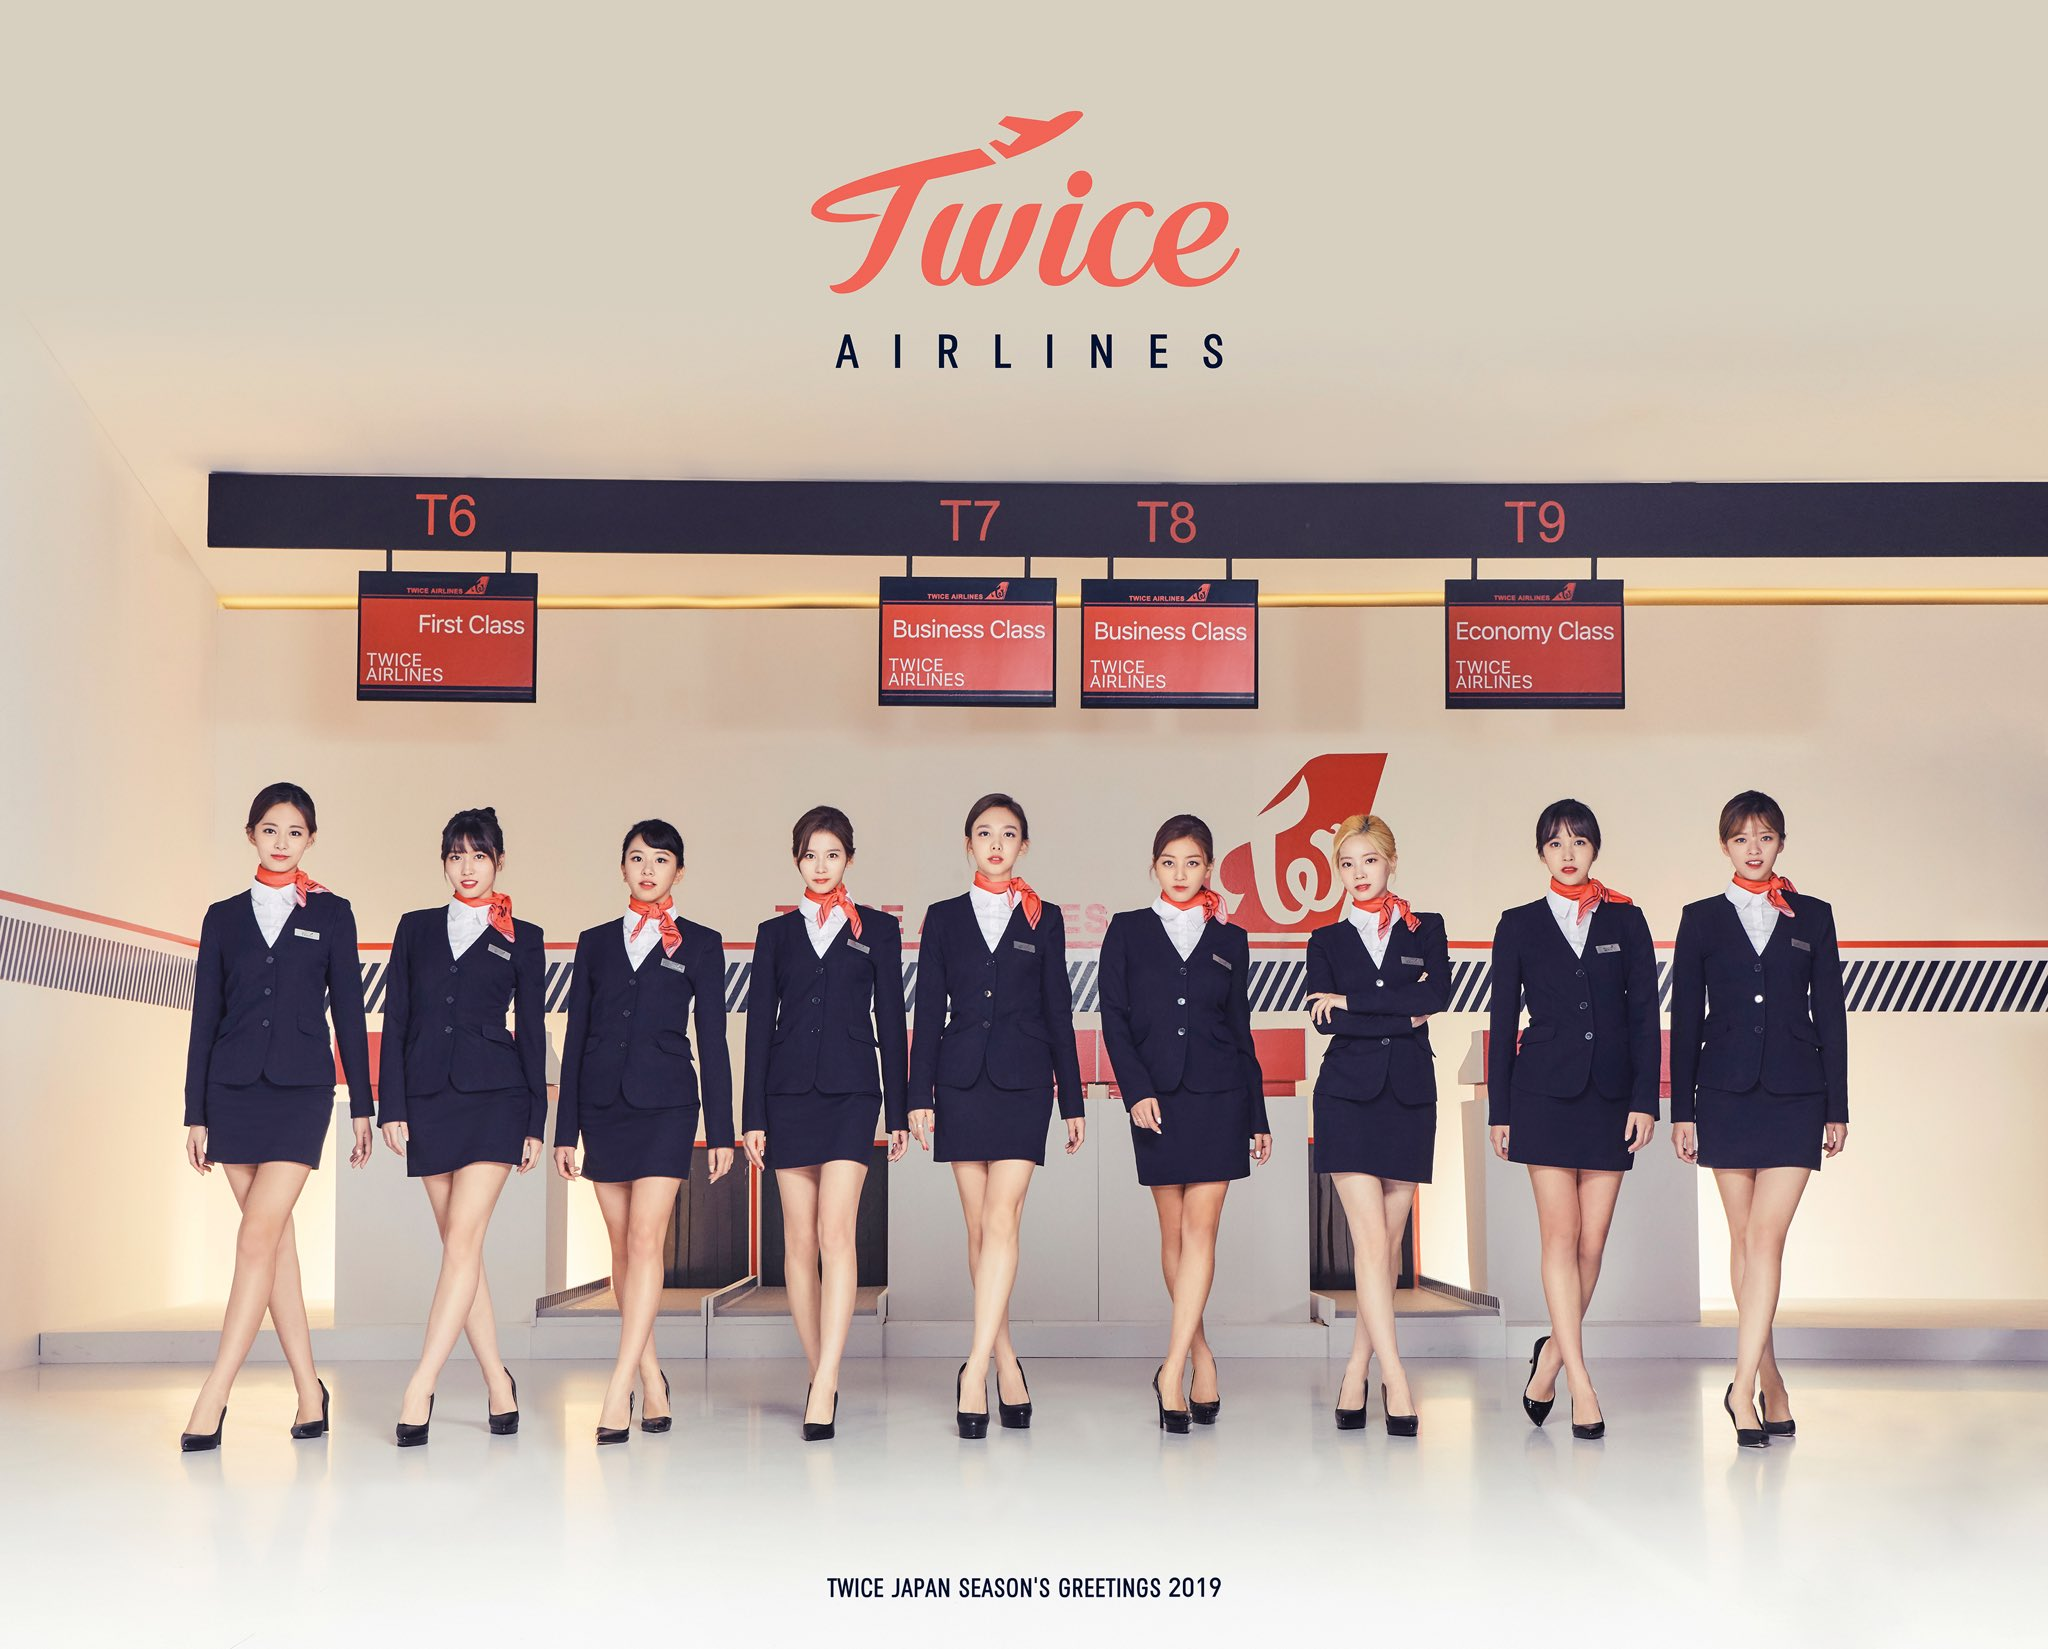 Twice japan official on twitter twice japan seasons greetings twice japan official on twitter twice japan seasons greetings 2019 twice airlines pre order 1010wed 12001030tue 2359 regular m4hsunfo